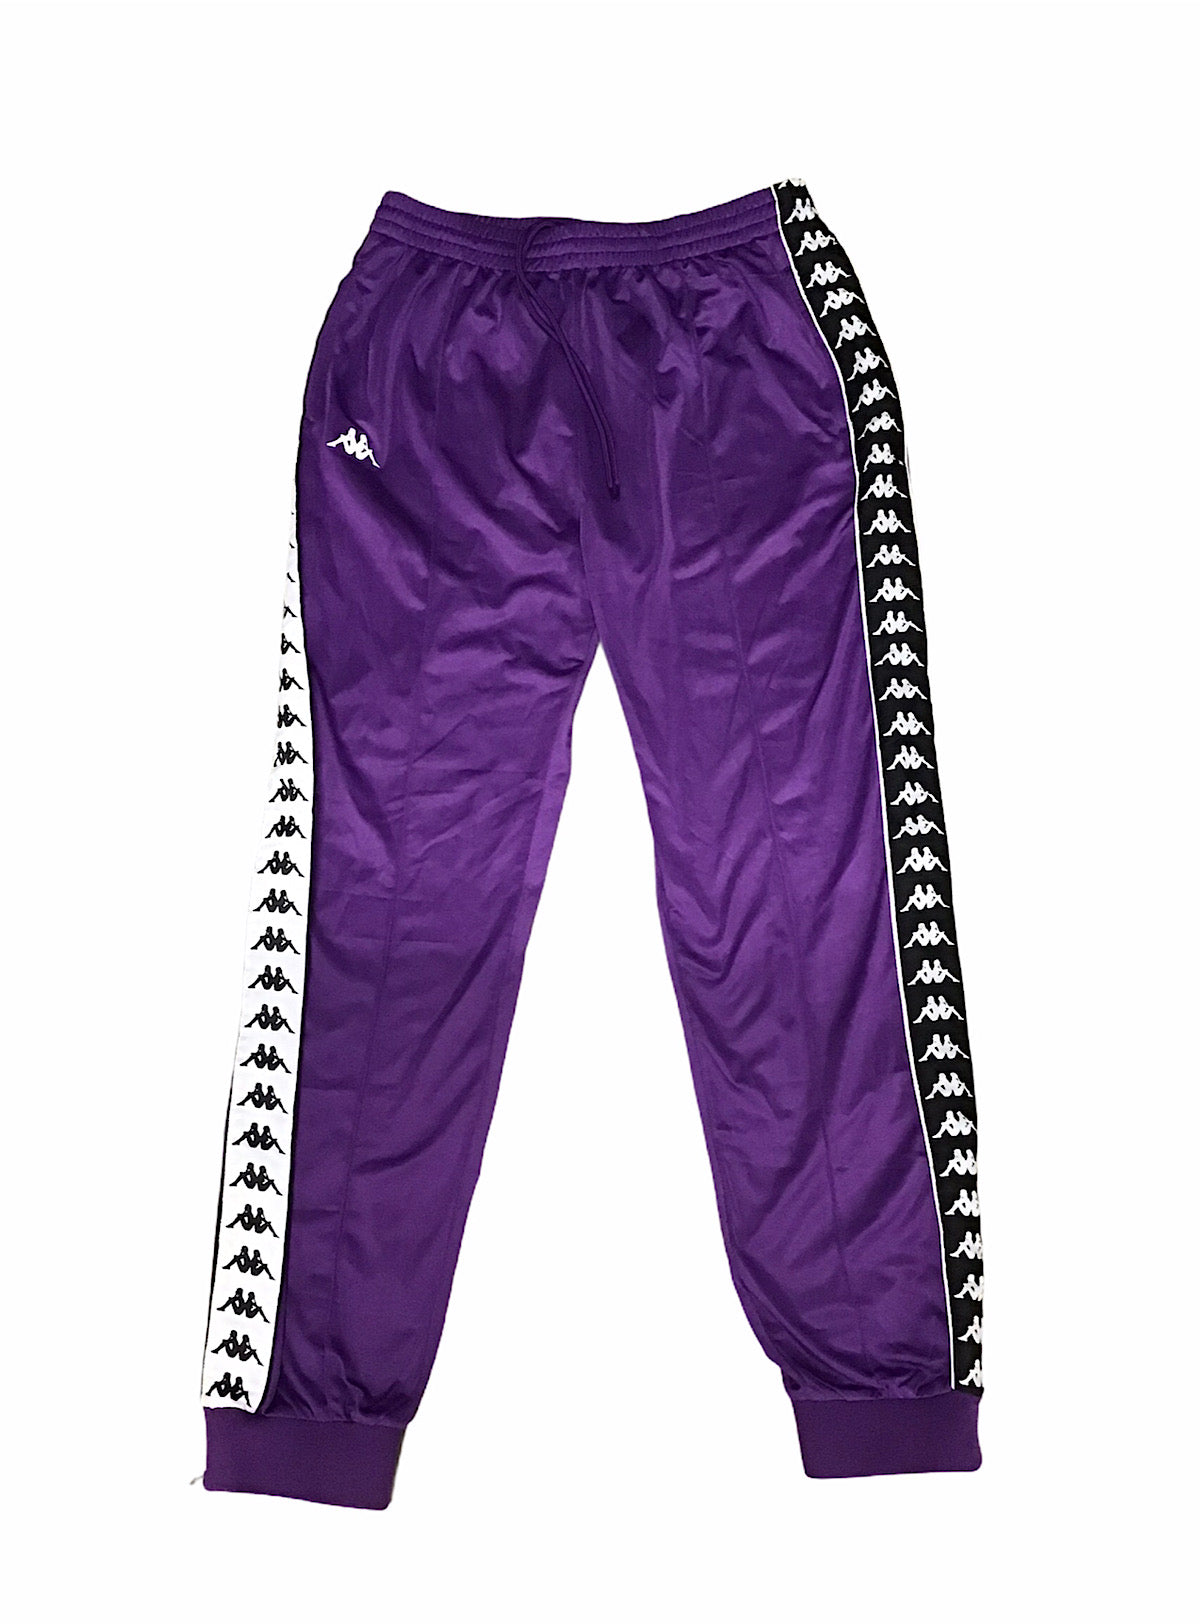 Kappa 222 - Track Pants - Purple - 30KQW0